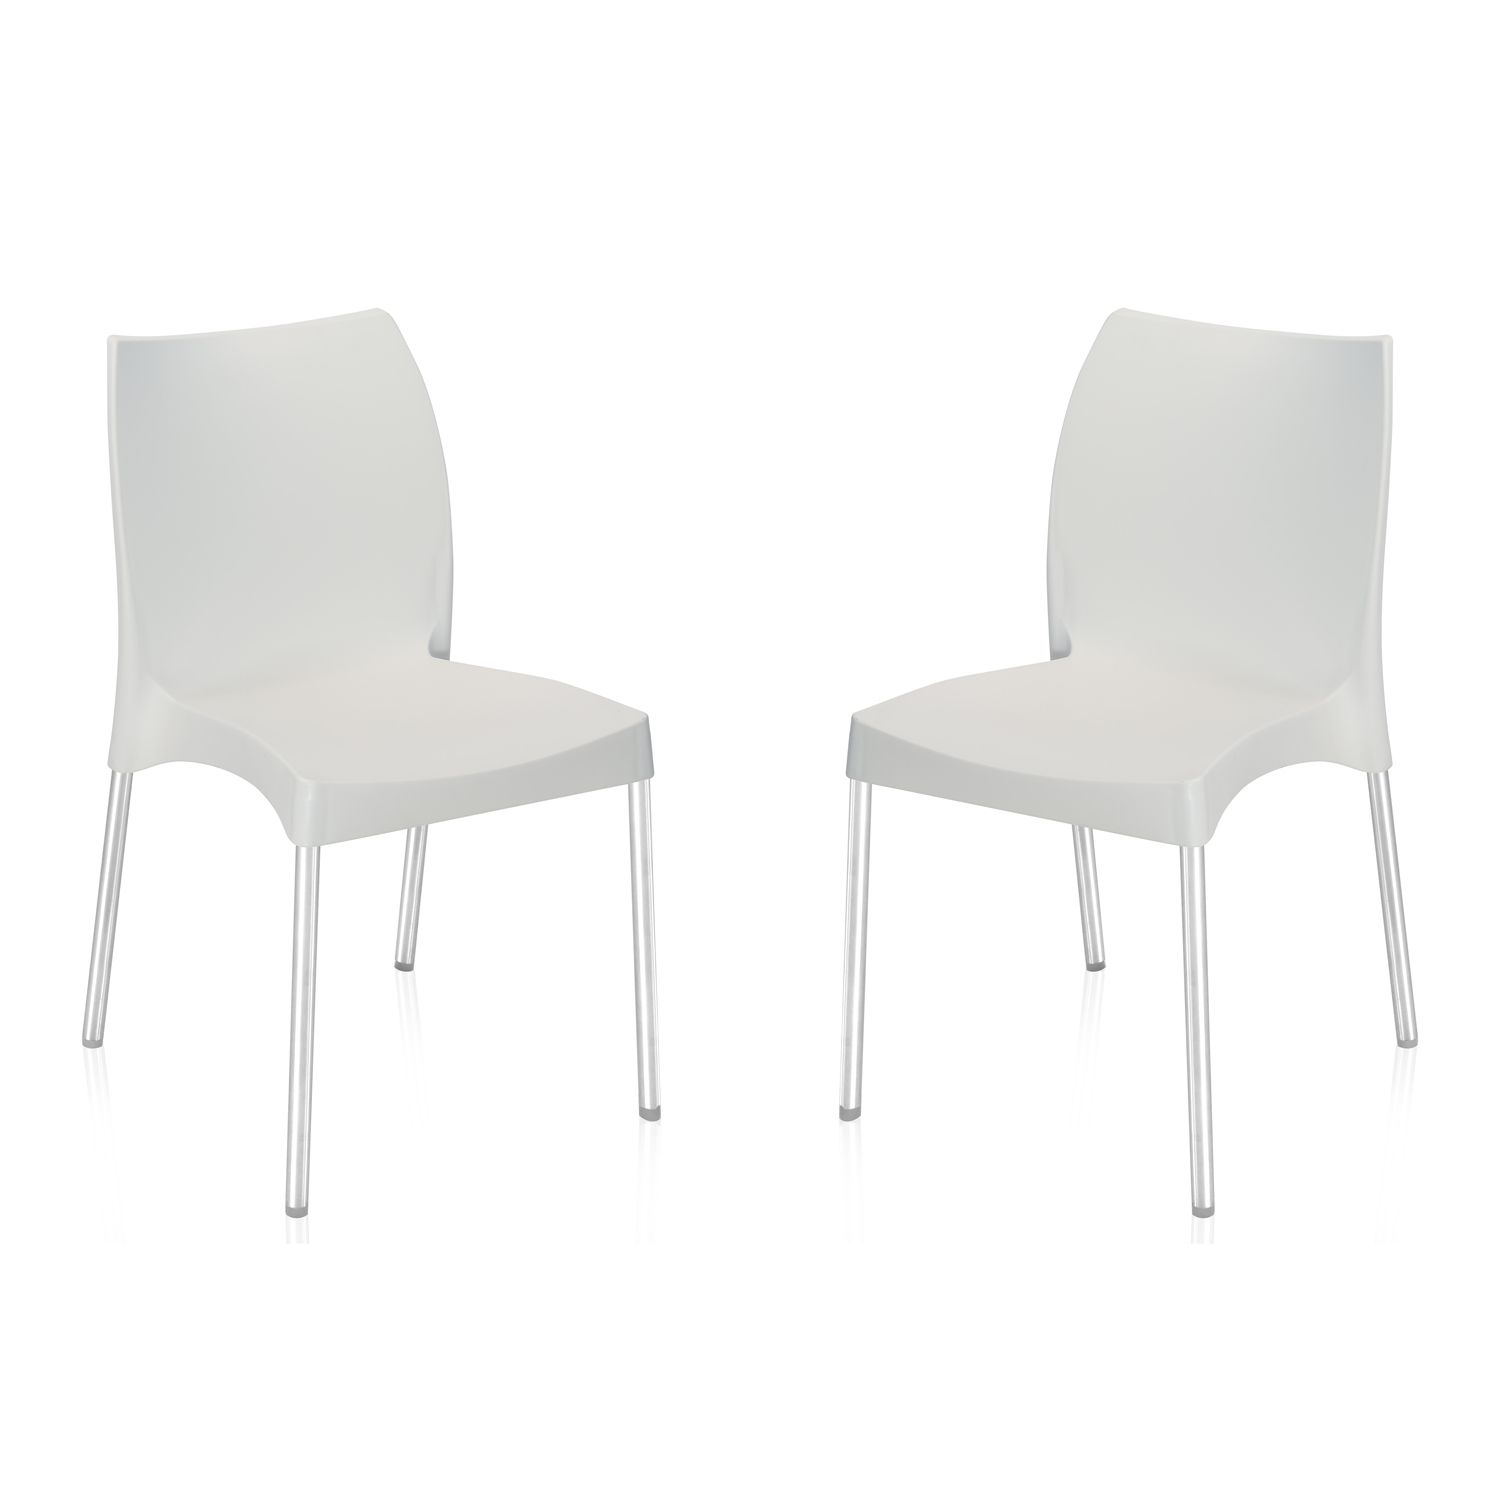 Nilkamal plastic chair - Nilkamal Novella 07 Plastic Chair Set Of 2